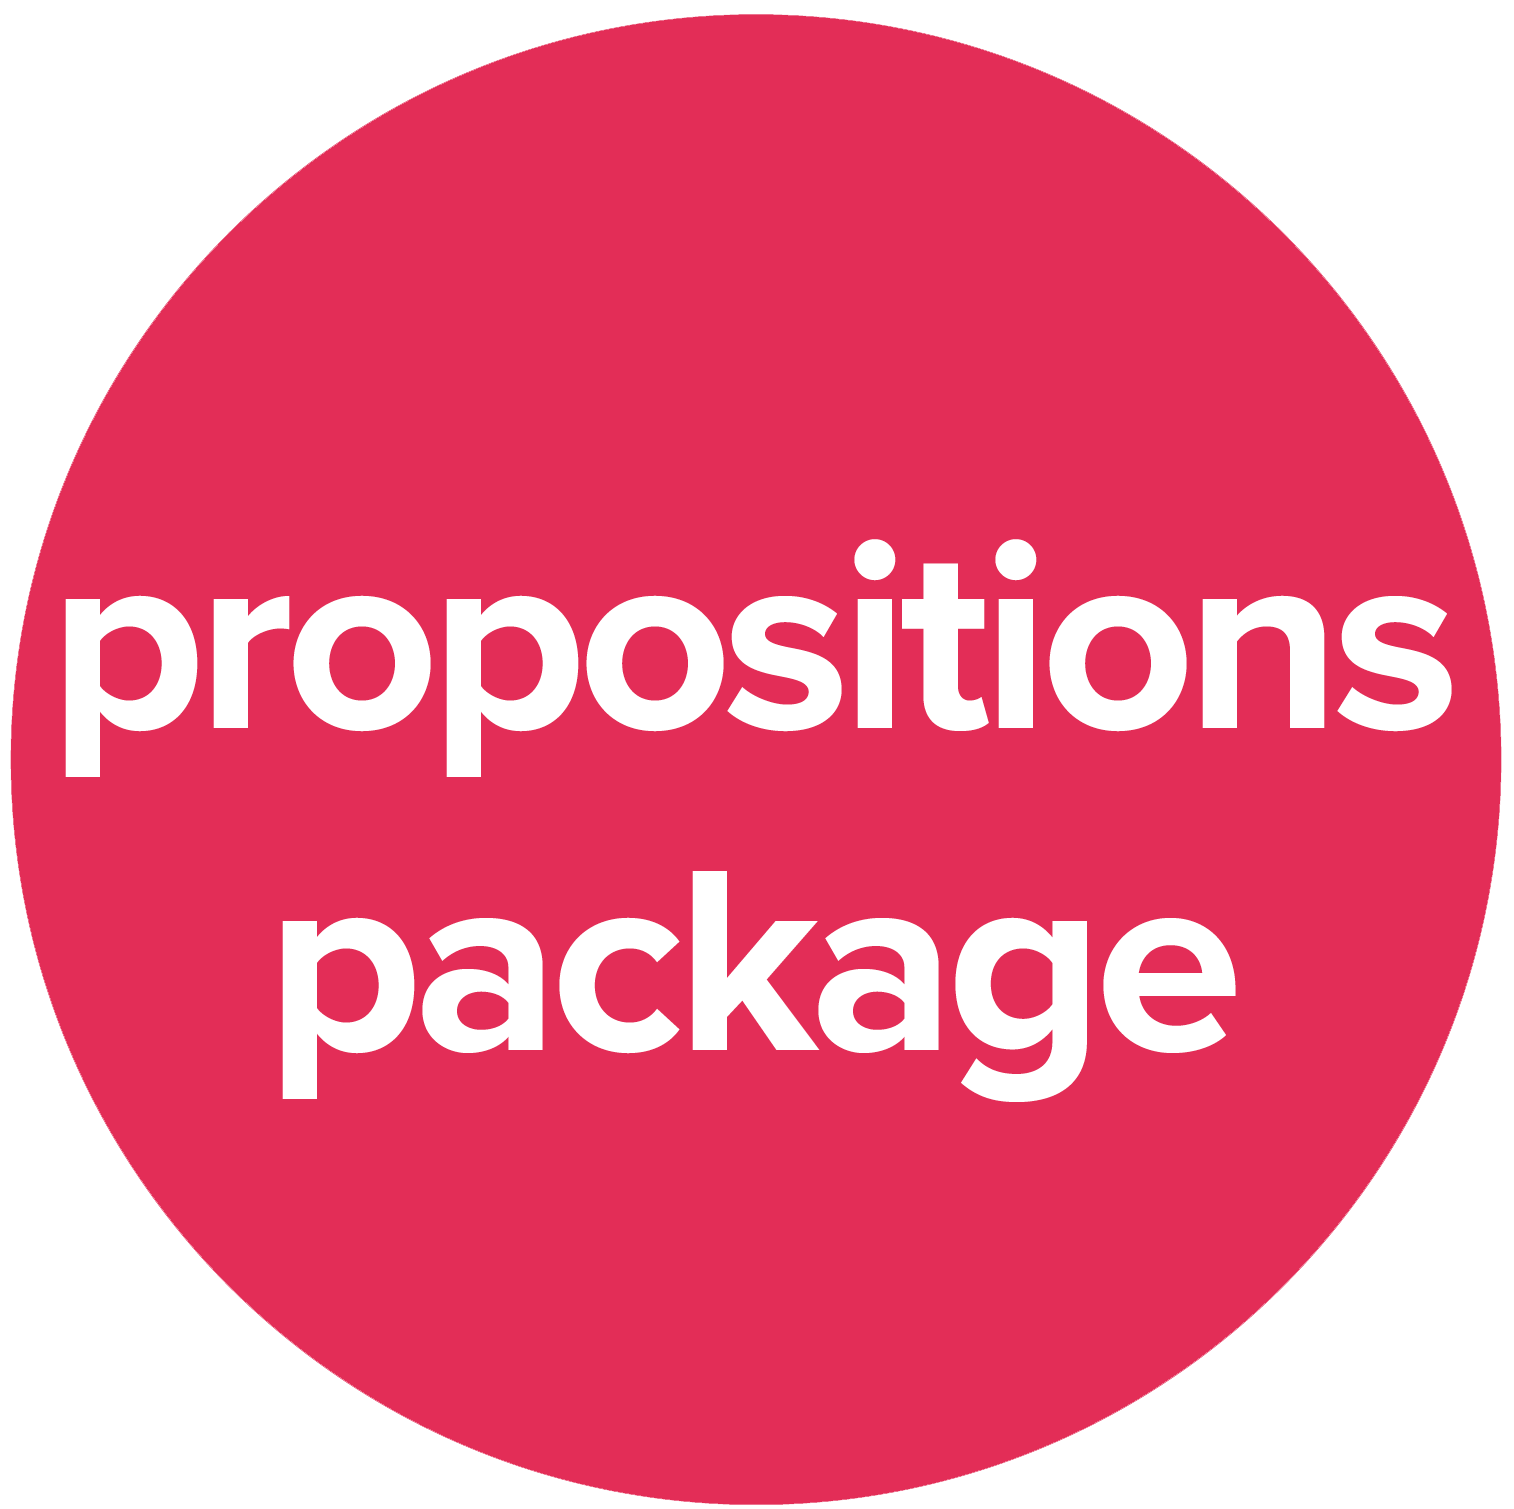 packages-propositions